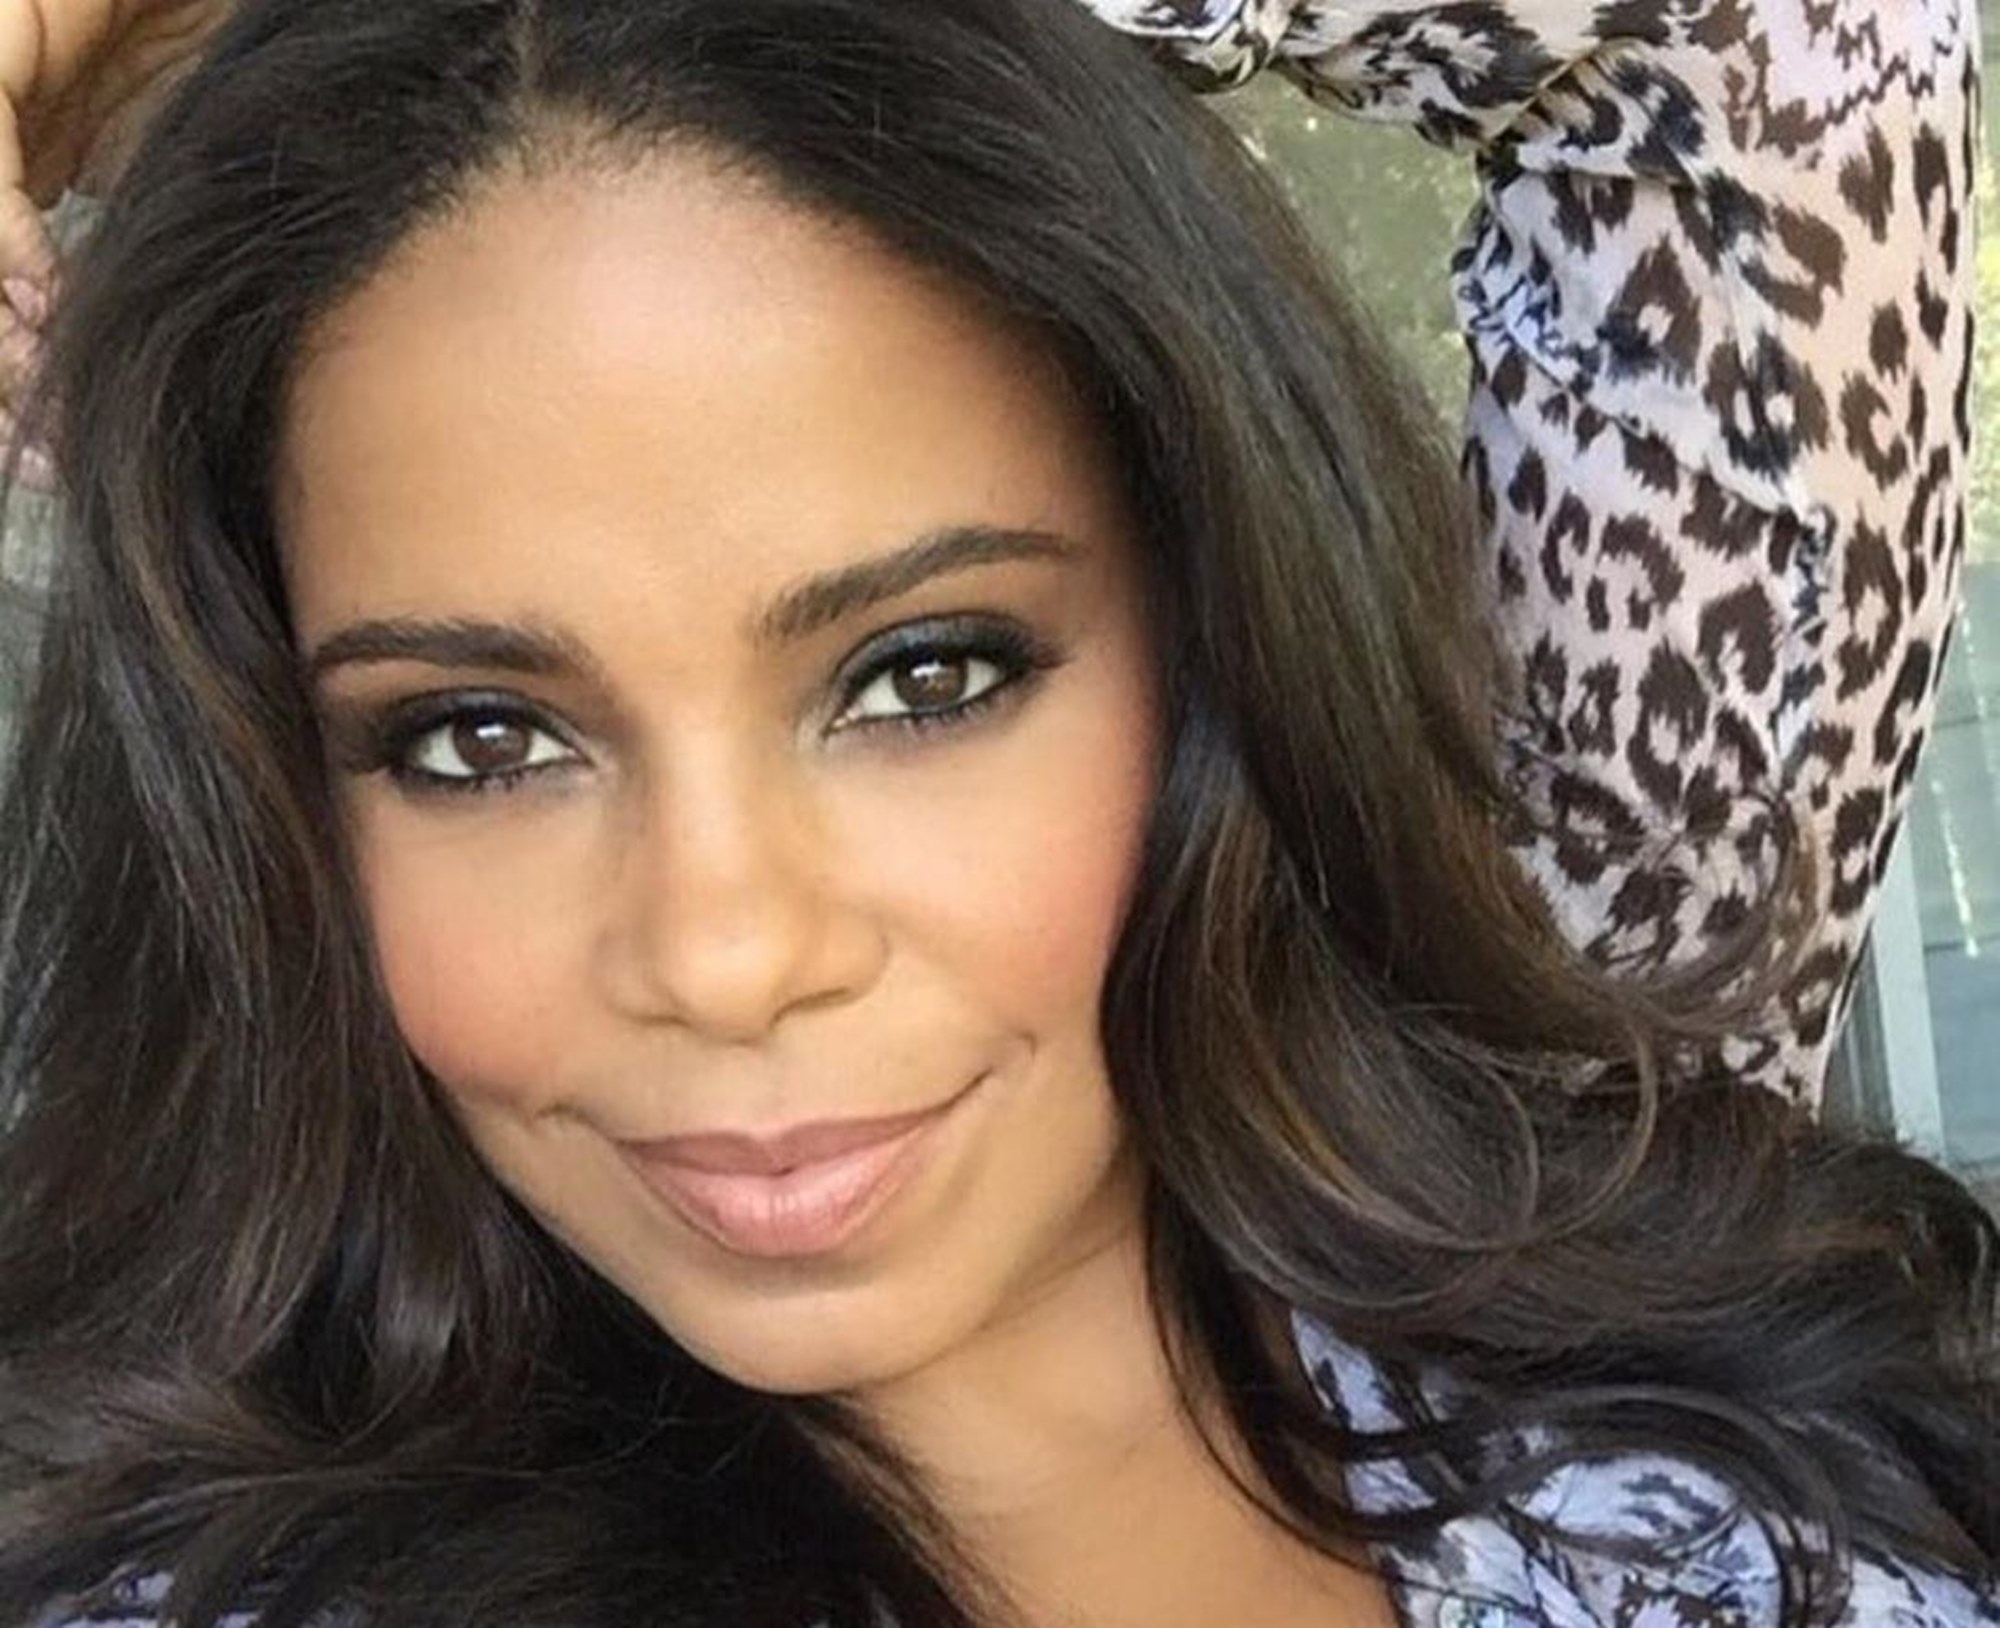 sanaa-lathan-shares-stunning-photos-that-touch-on-her-roots-while-making-powerful-statement